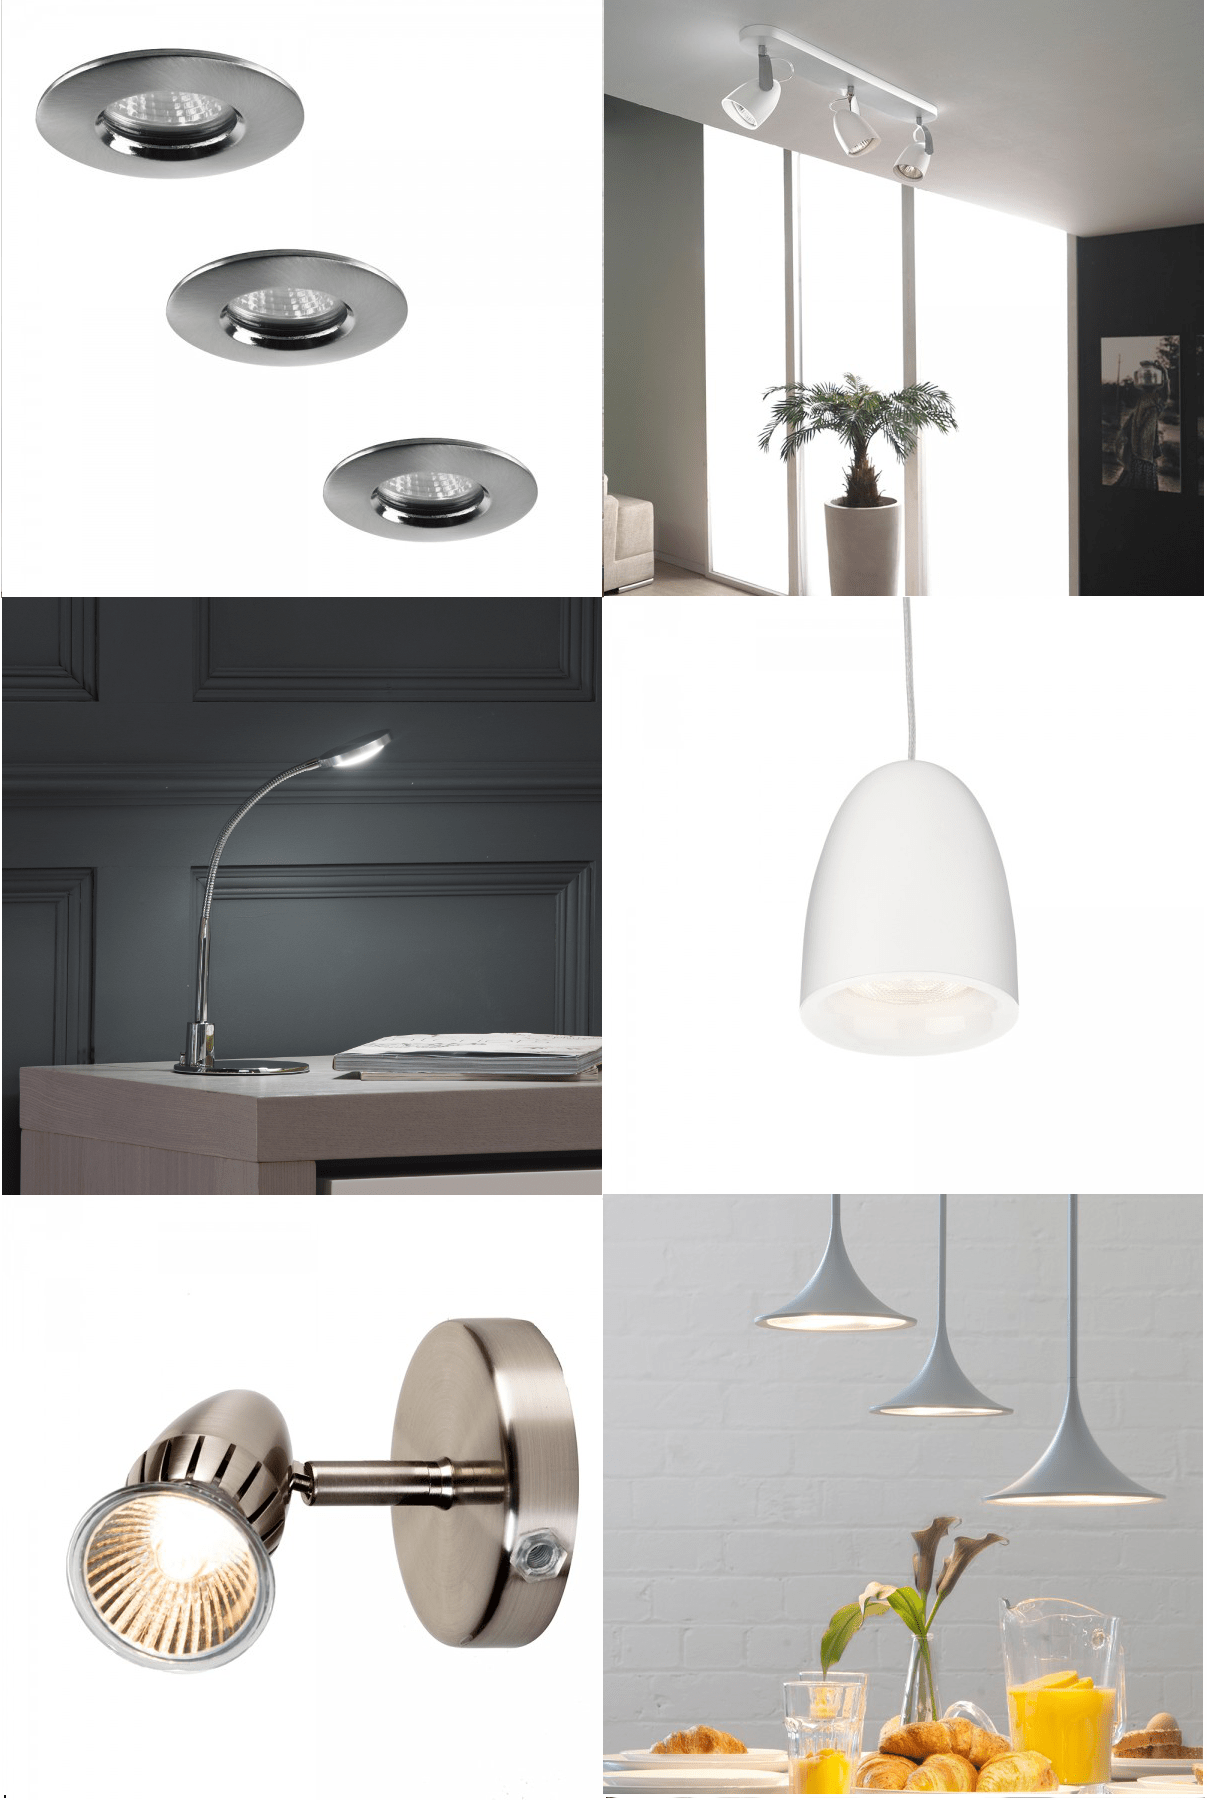 functional lighting minimalist style light fittings